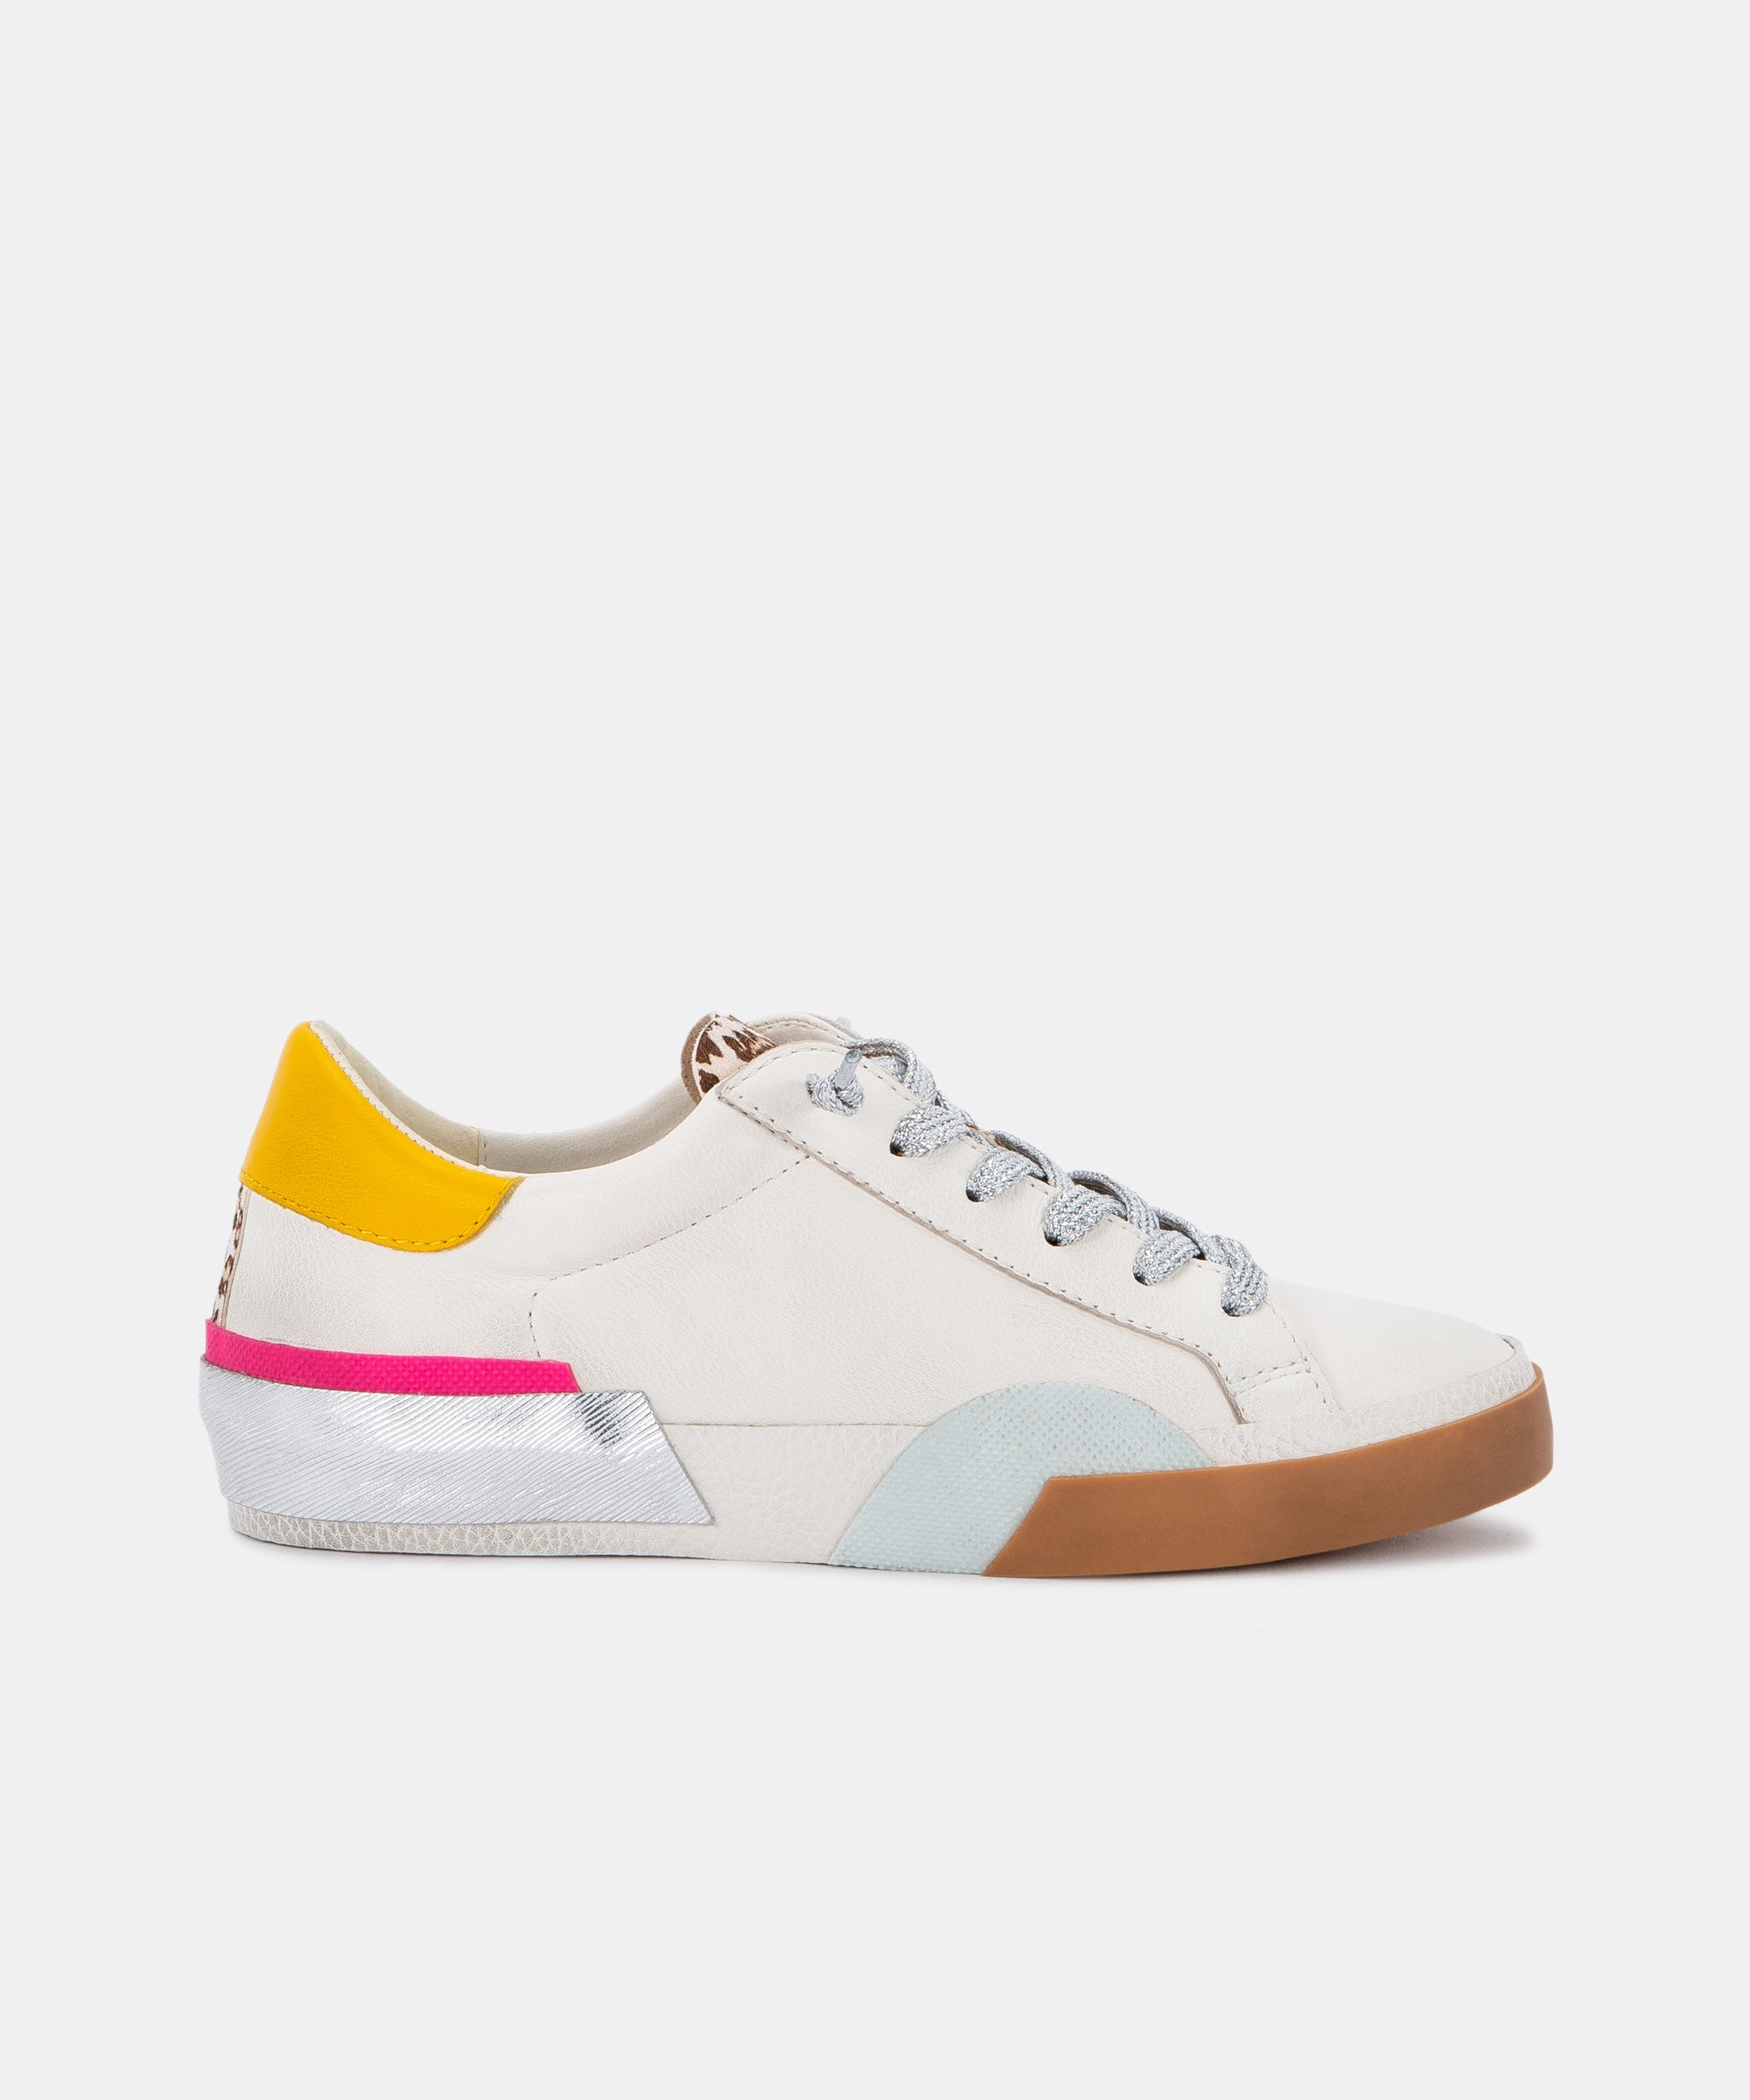 ZINA SNEAKERS IN WHITE MULTI LEATHER